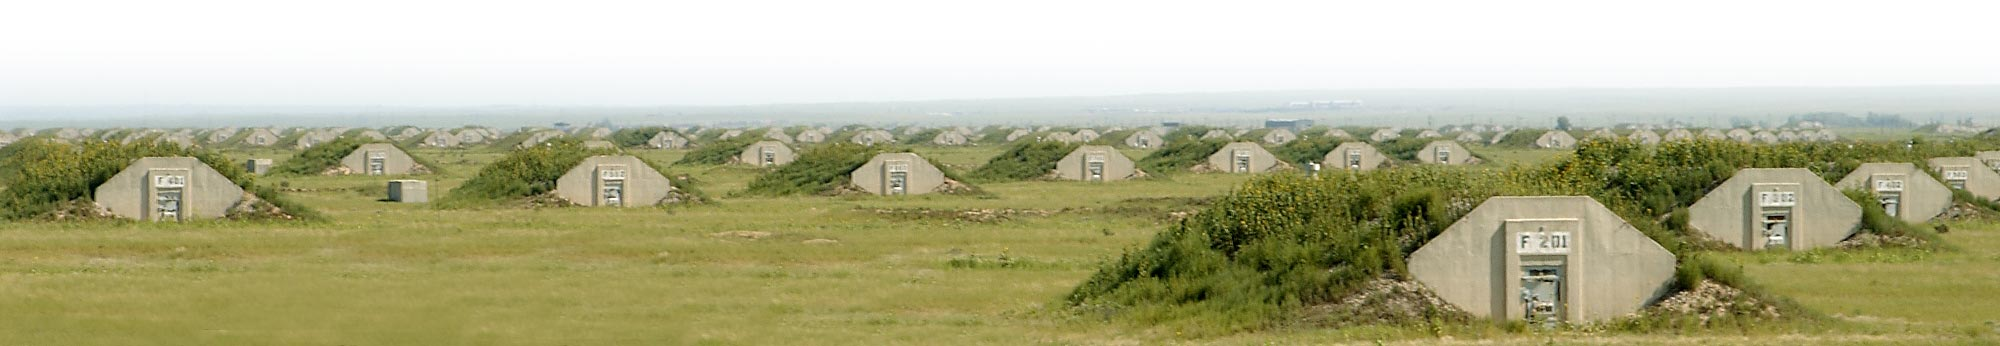 Storage igloos at  The U.S. Army Pueblo Chemical Depot